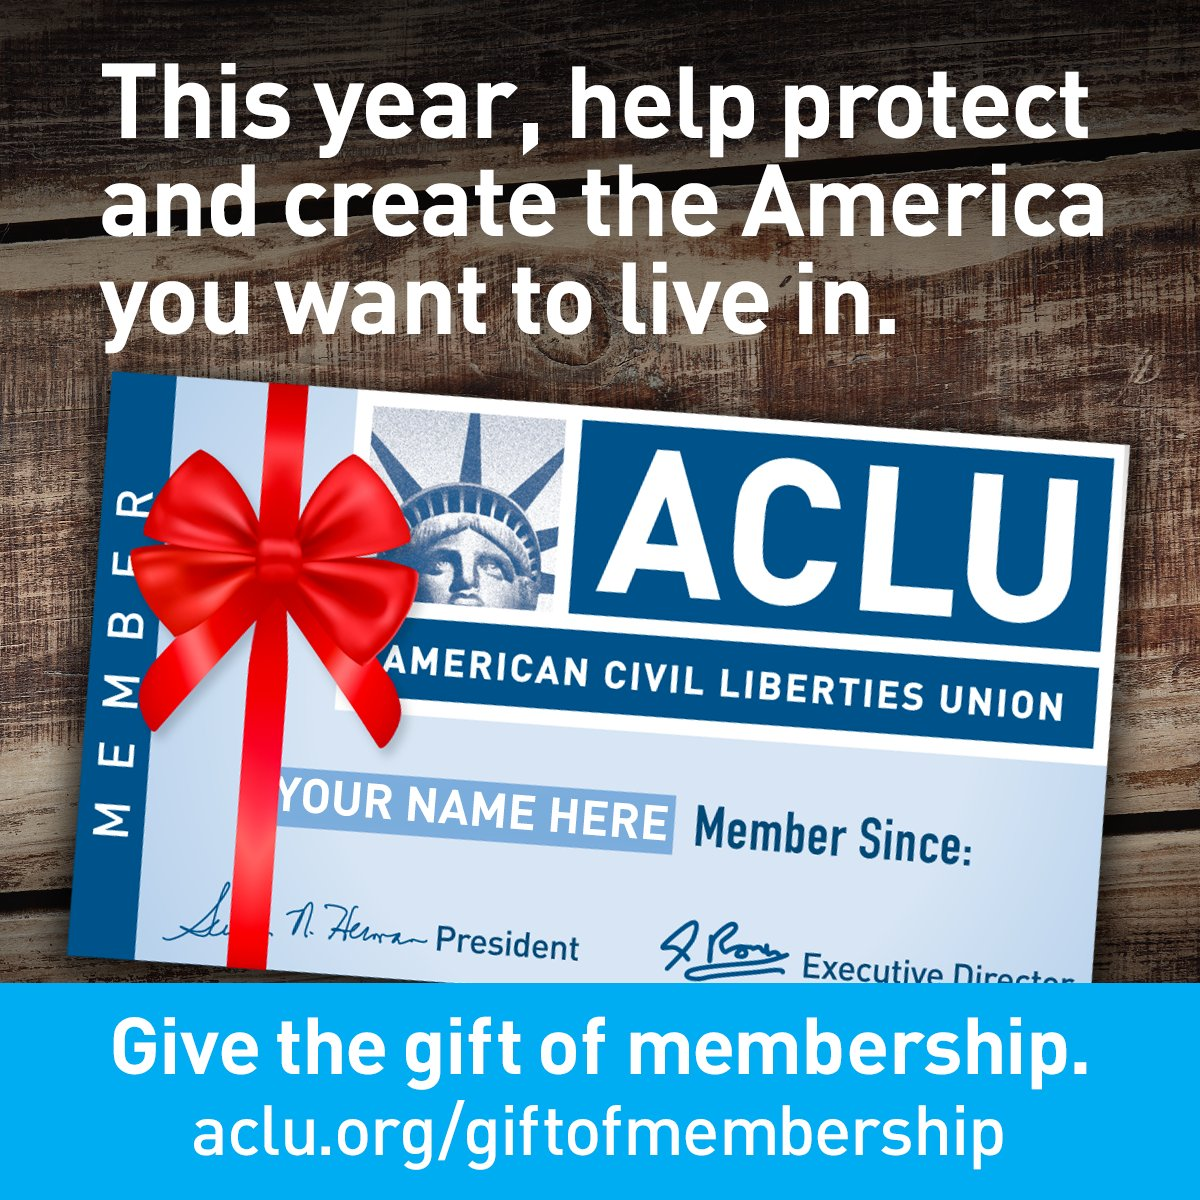 "ACLU on Twitter: ""Who are you giving an ACLU membership to this year? https://t.co/4fAbSy6oiX… """